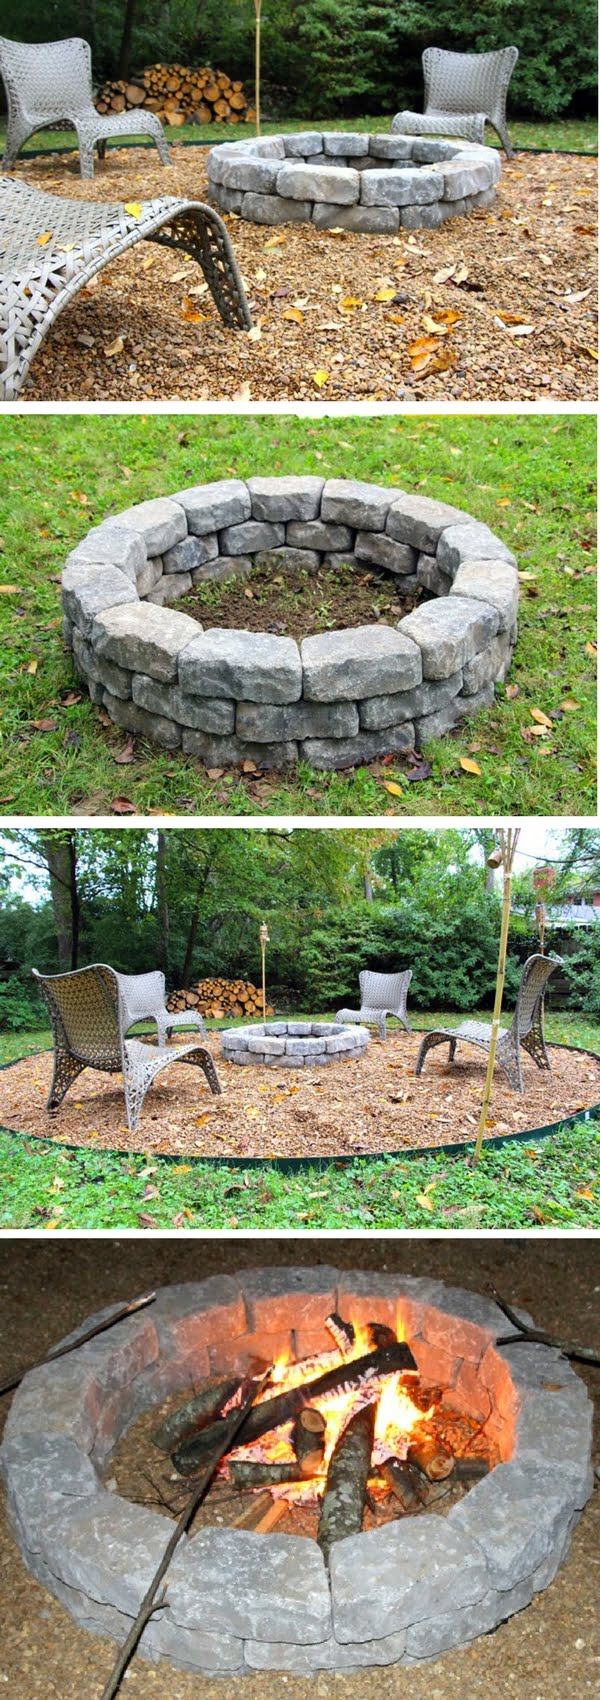 Check out the tutorial on how to make an easy DIY round fire pit